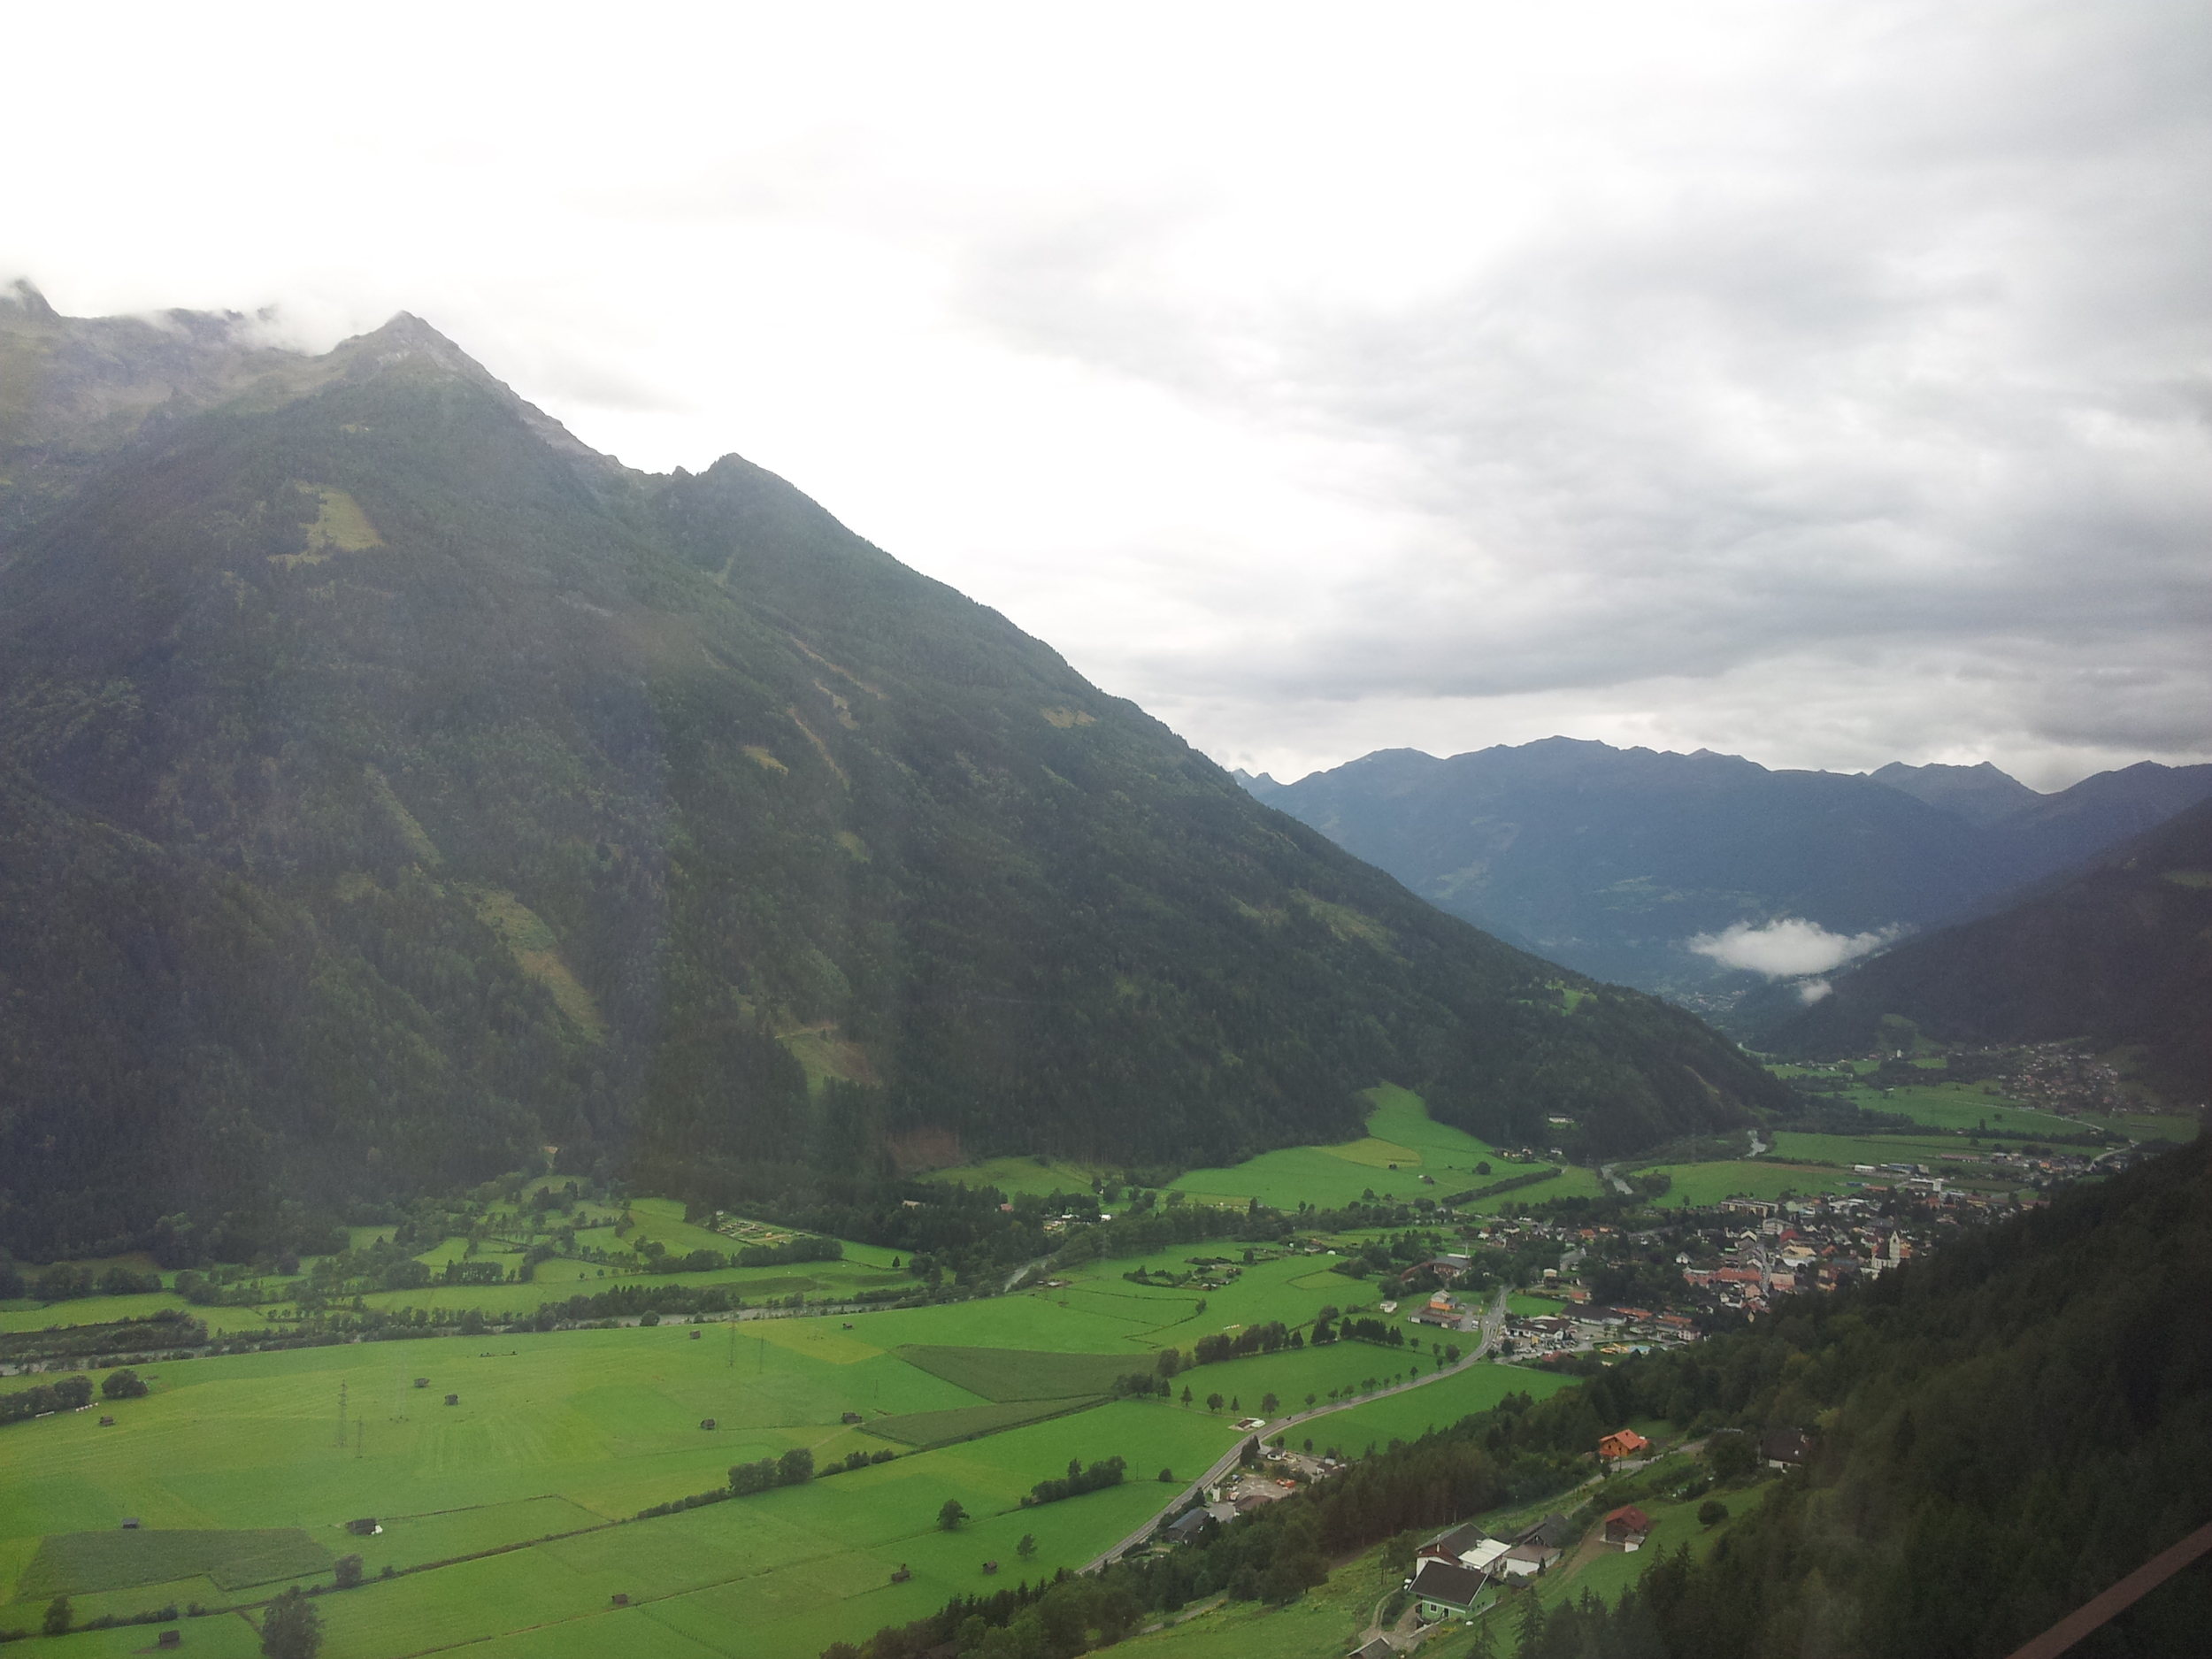 A 9 1/2 hour train ride from Freiburg in Germany to Millstatt in Austria. The last 2 hours through these mountainous landscapes